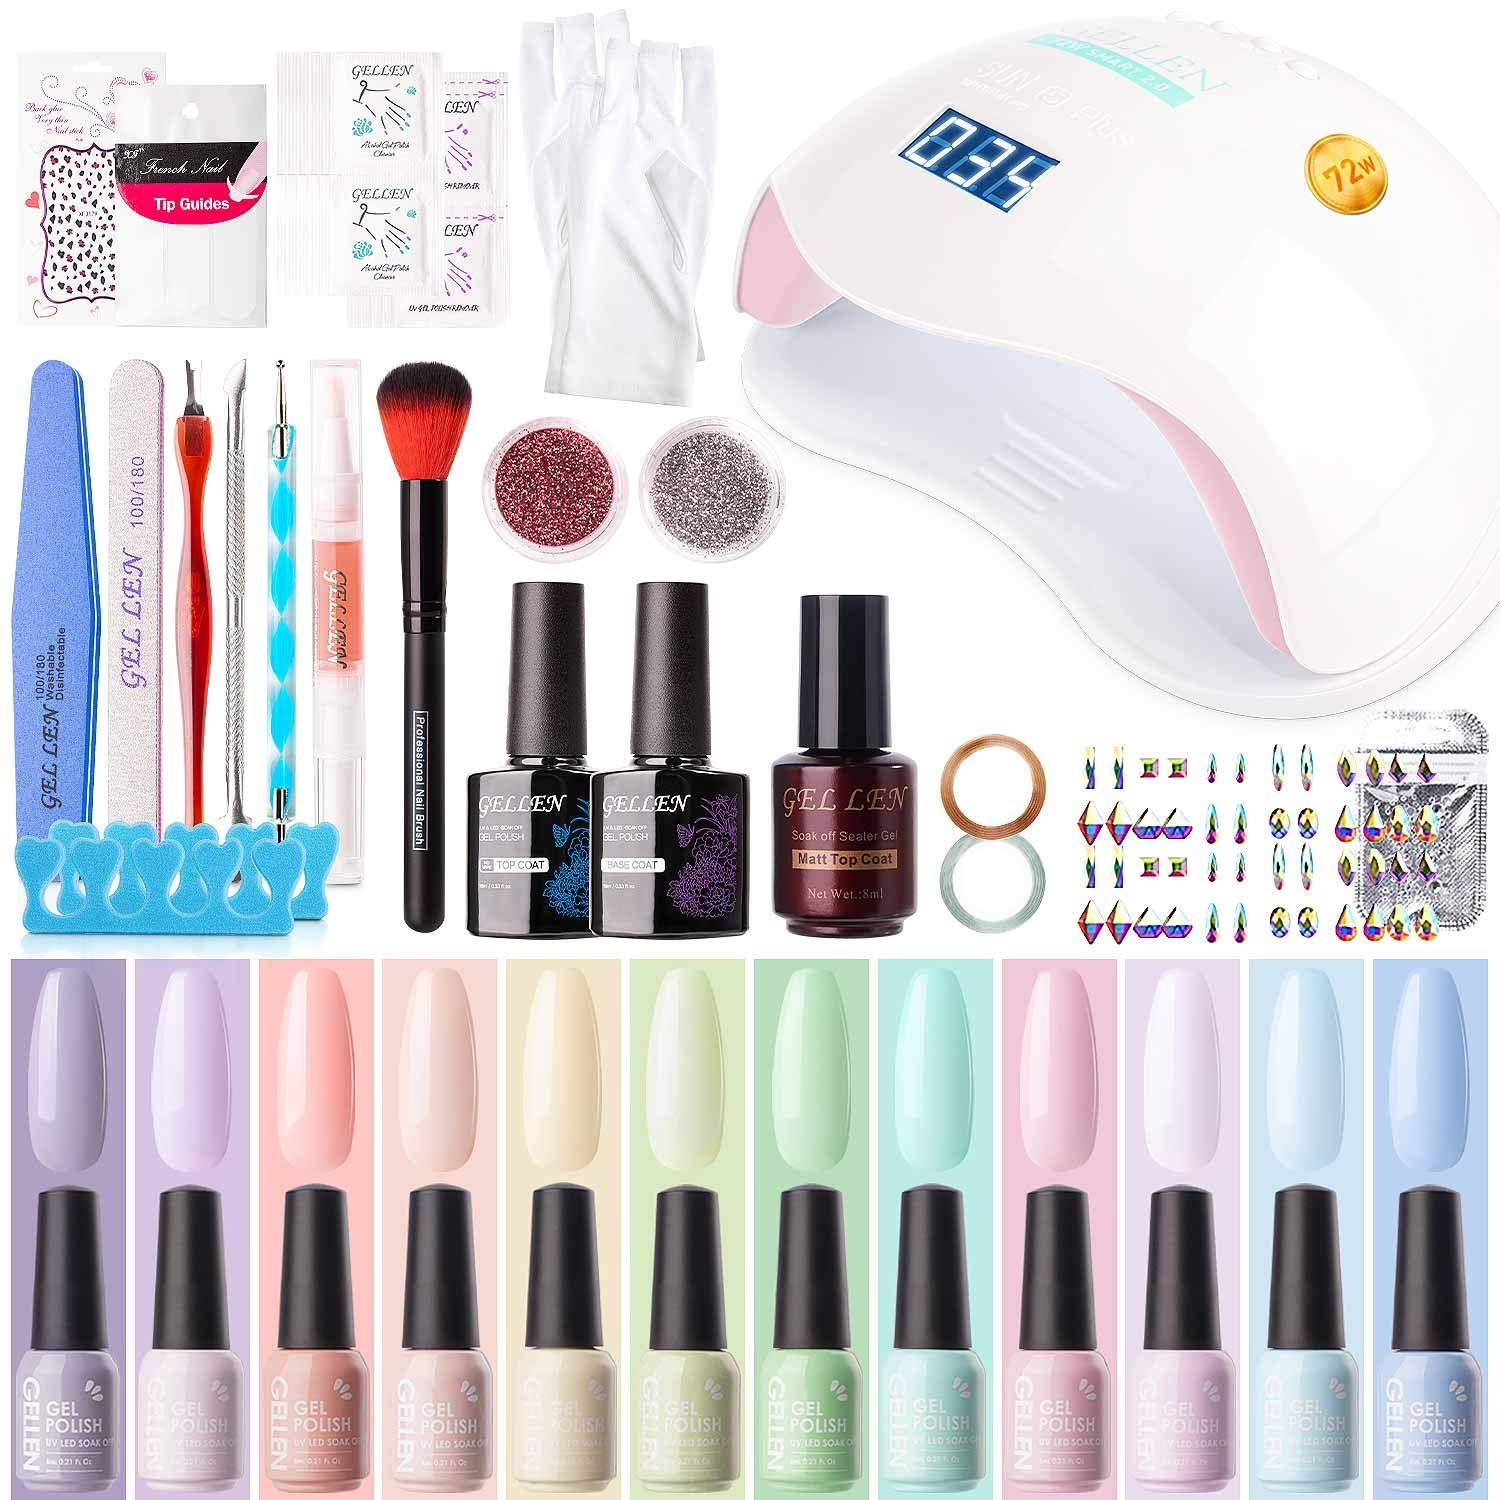 Gellen Gel Nail Polish Starter Kit With 72w Uv Led Nail Lamp 12 Colors Top Base Coat Upgraded Essential H In 2020 Gel Nail Polish Set Led Nail Lamp Manicure At Home